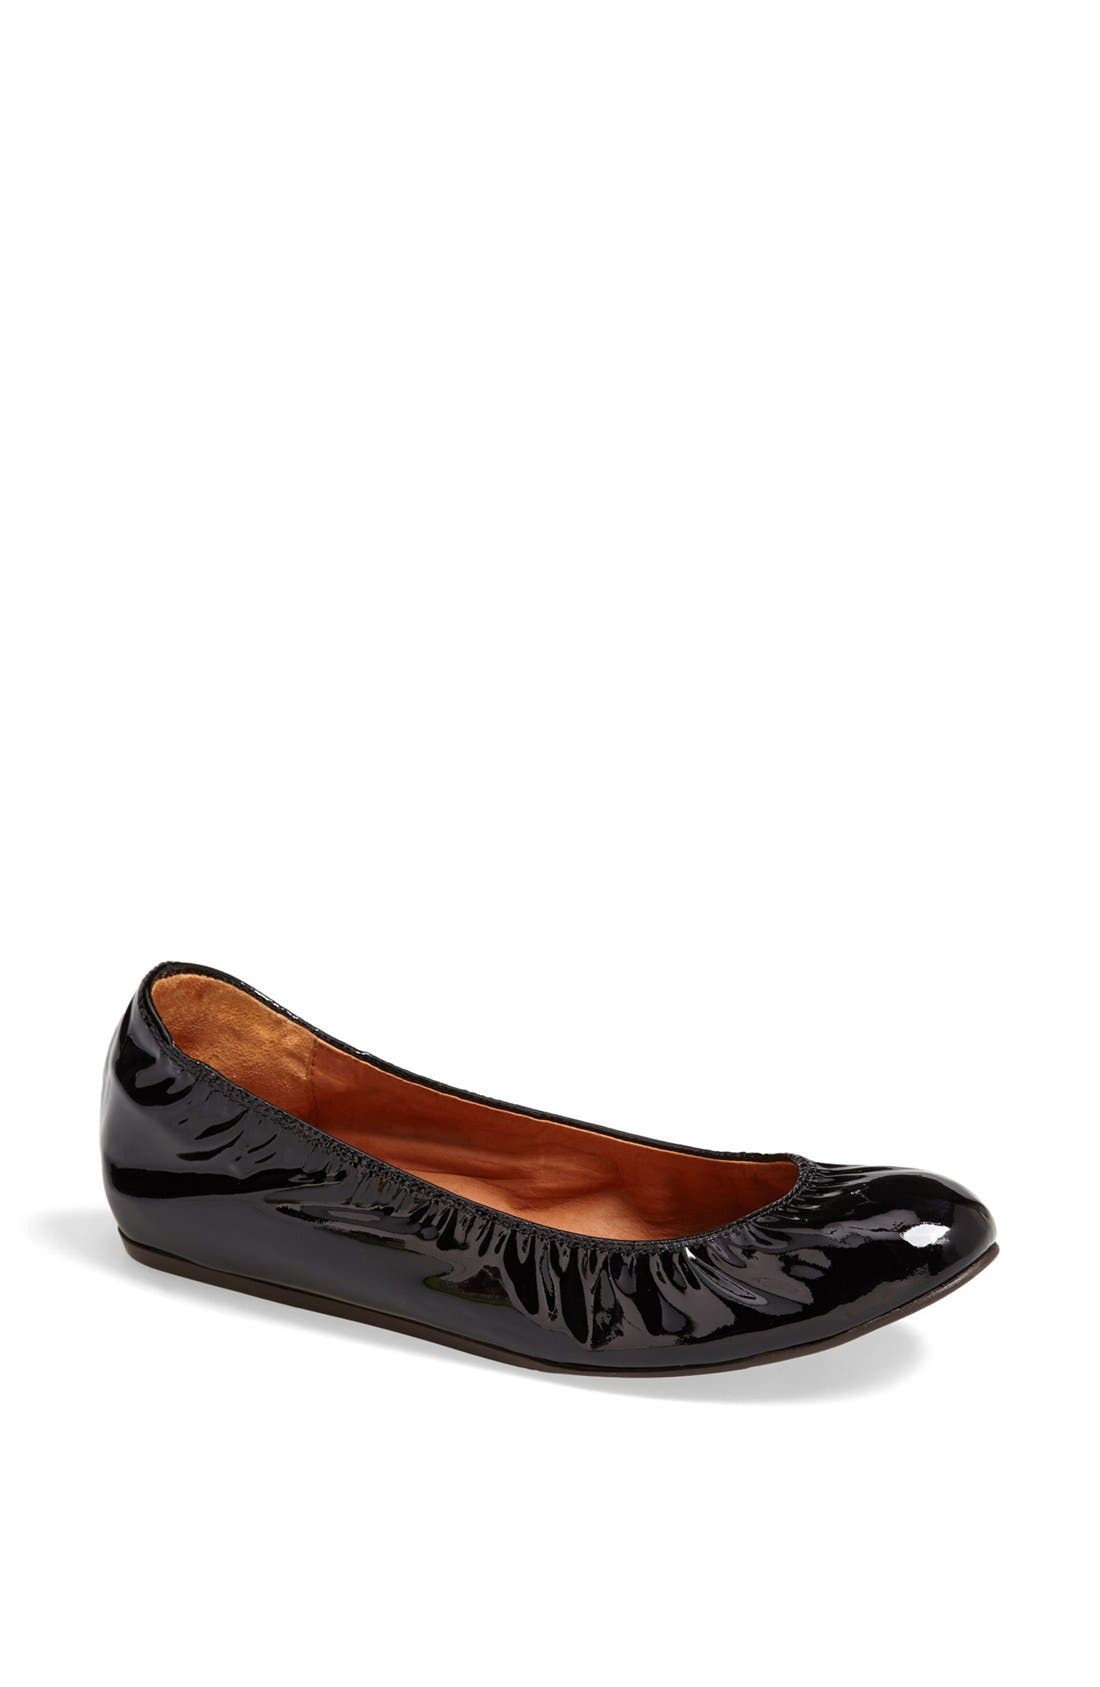 Alternate Image 1 Selected - Lanvin Patent Leather Ballerina Flat